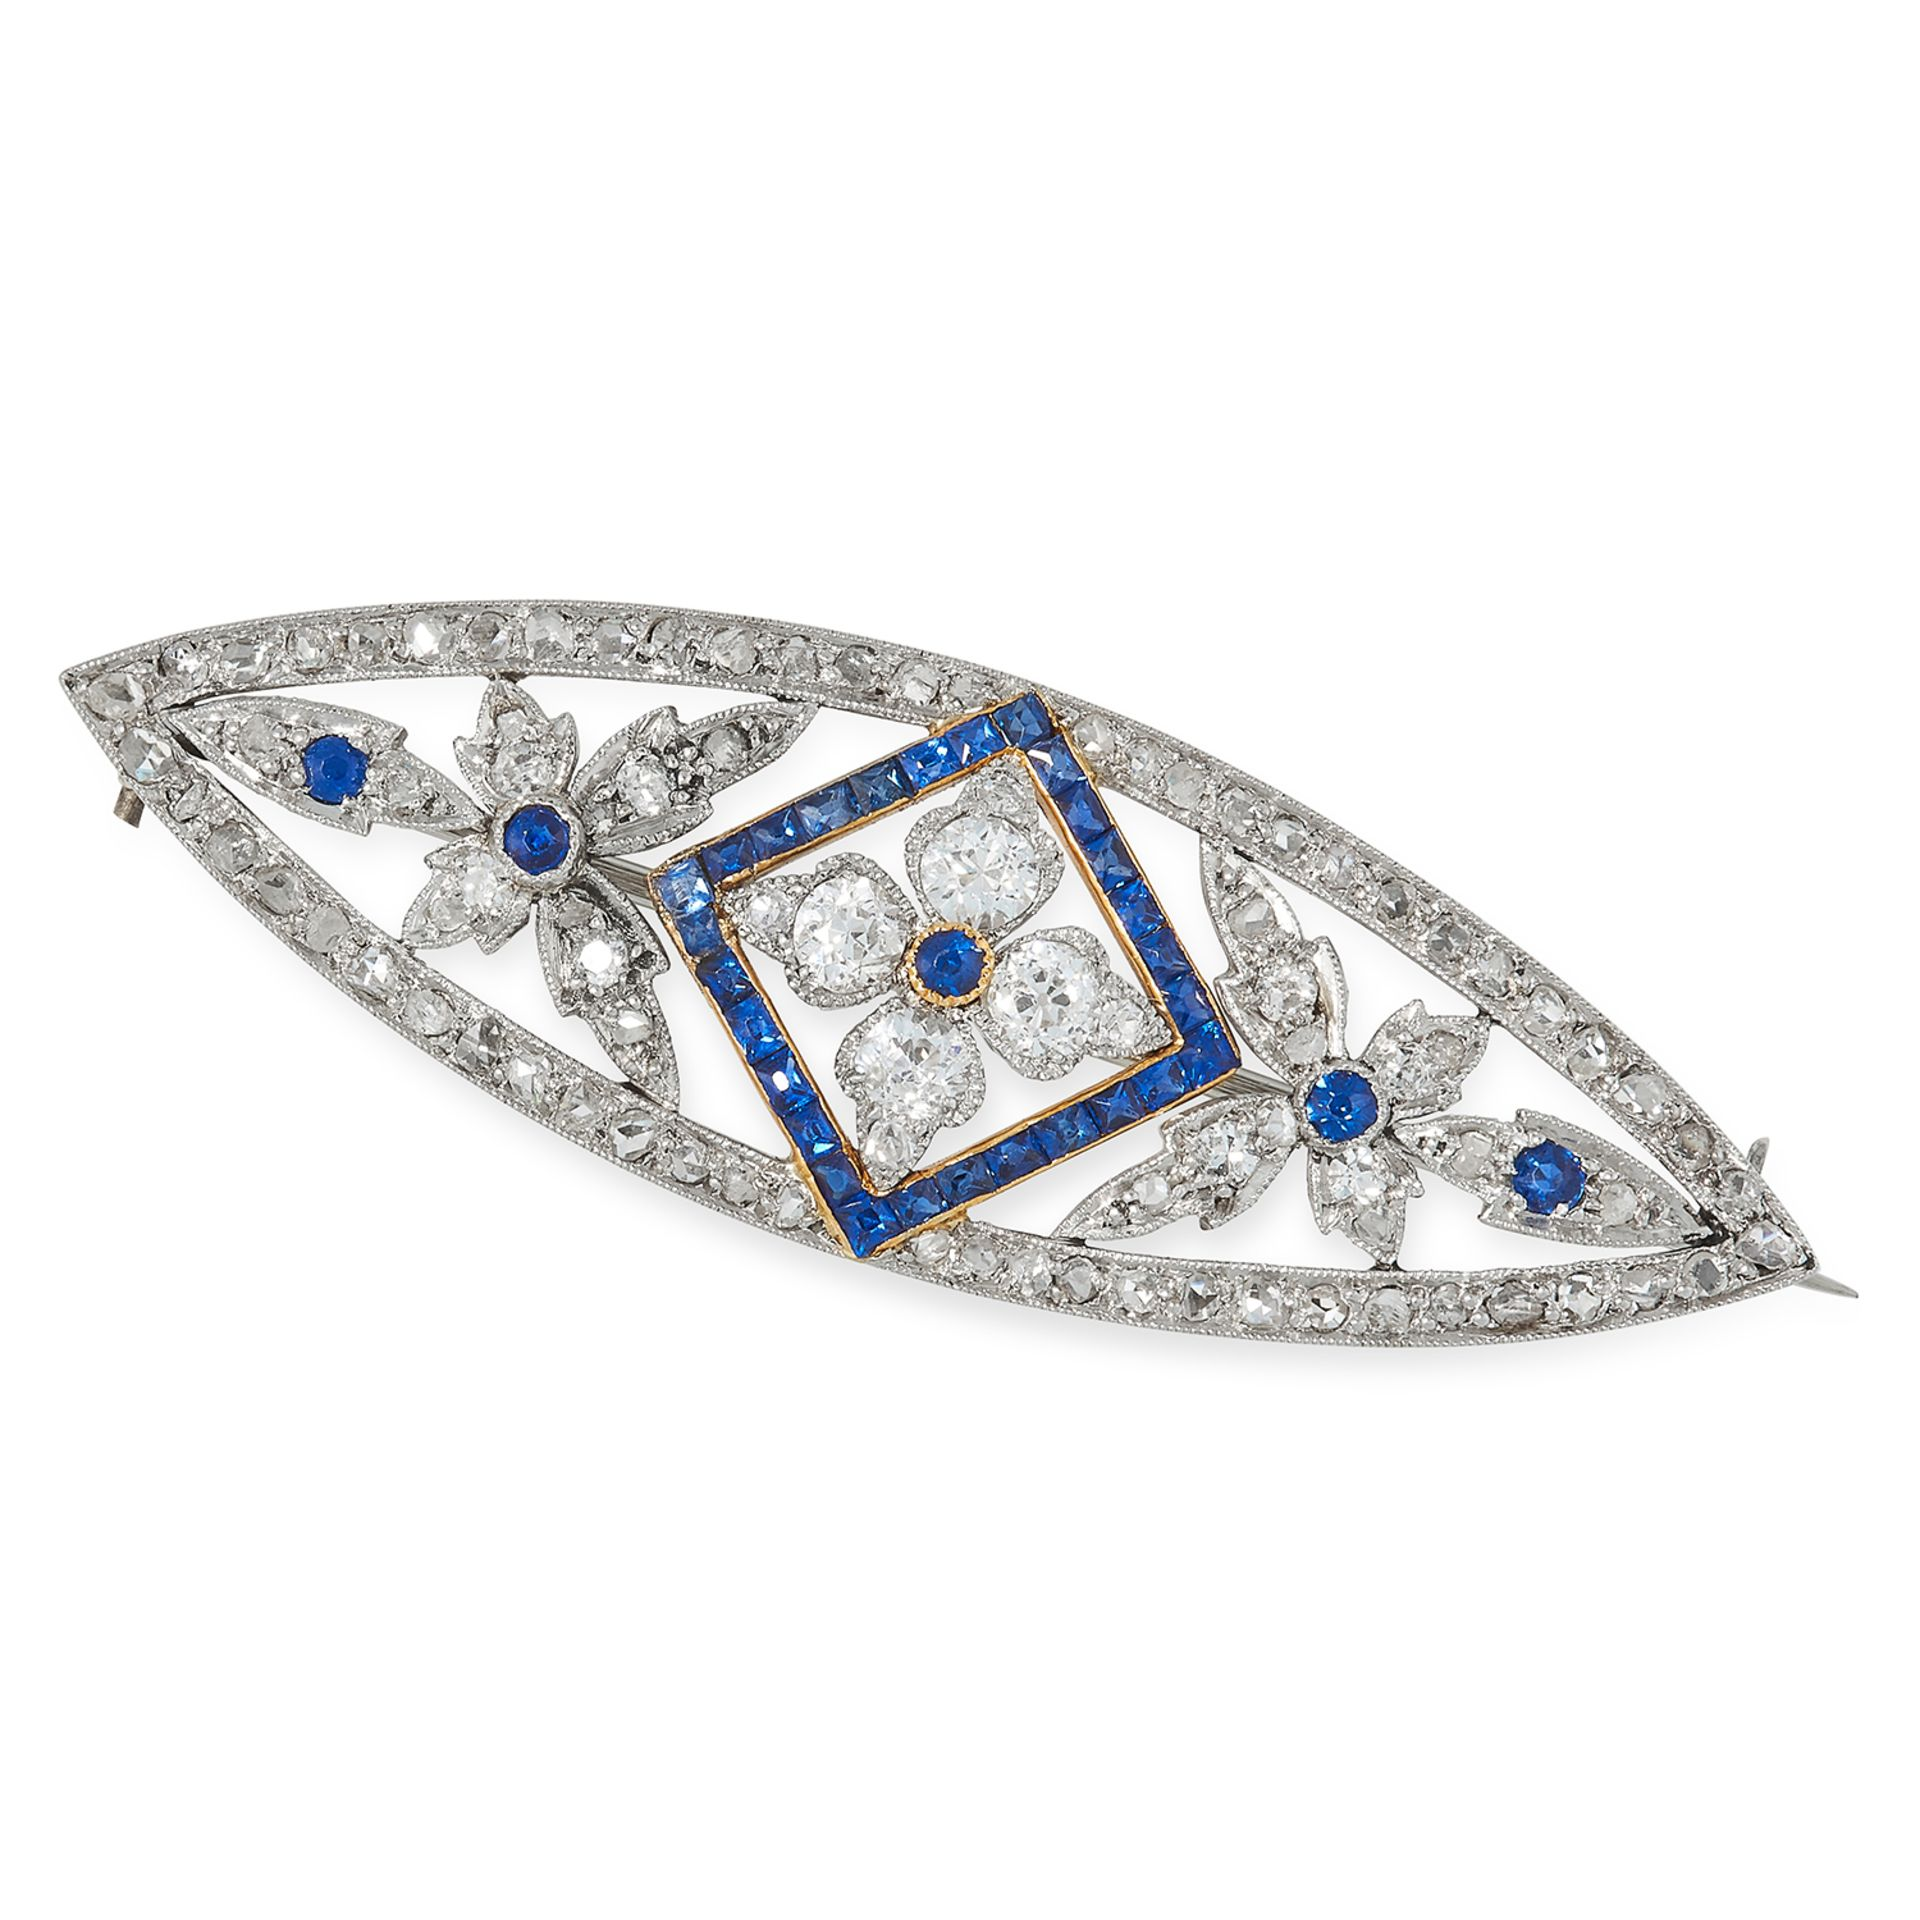 SAPPHIRE AND DIAMOND BROOCH in foliate design set with step and round cut sapphires and round and